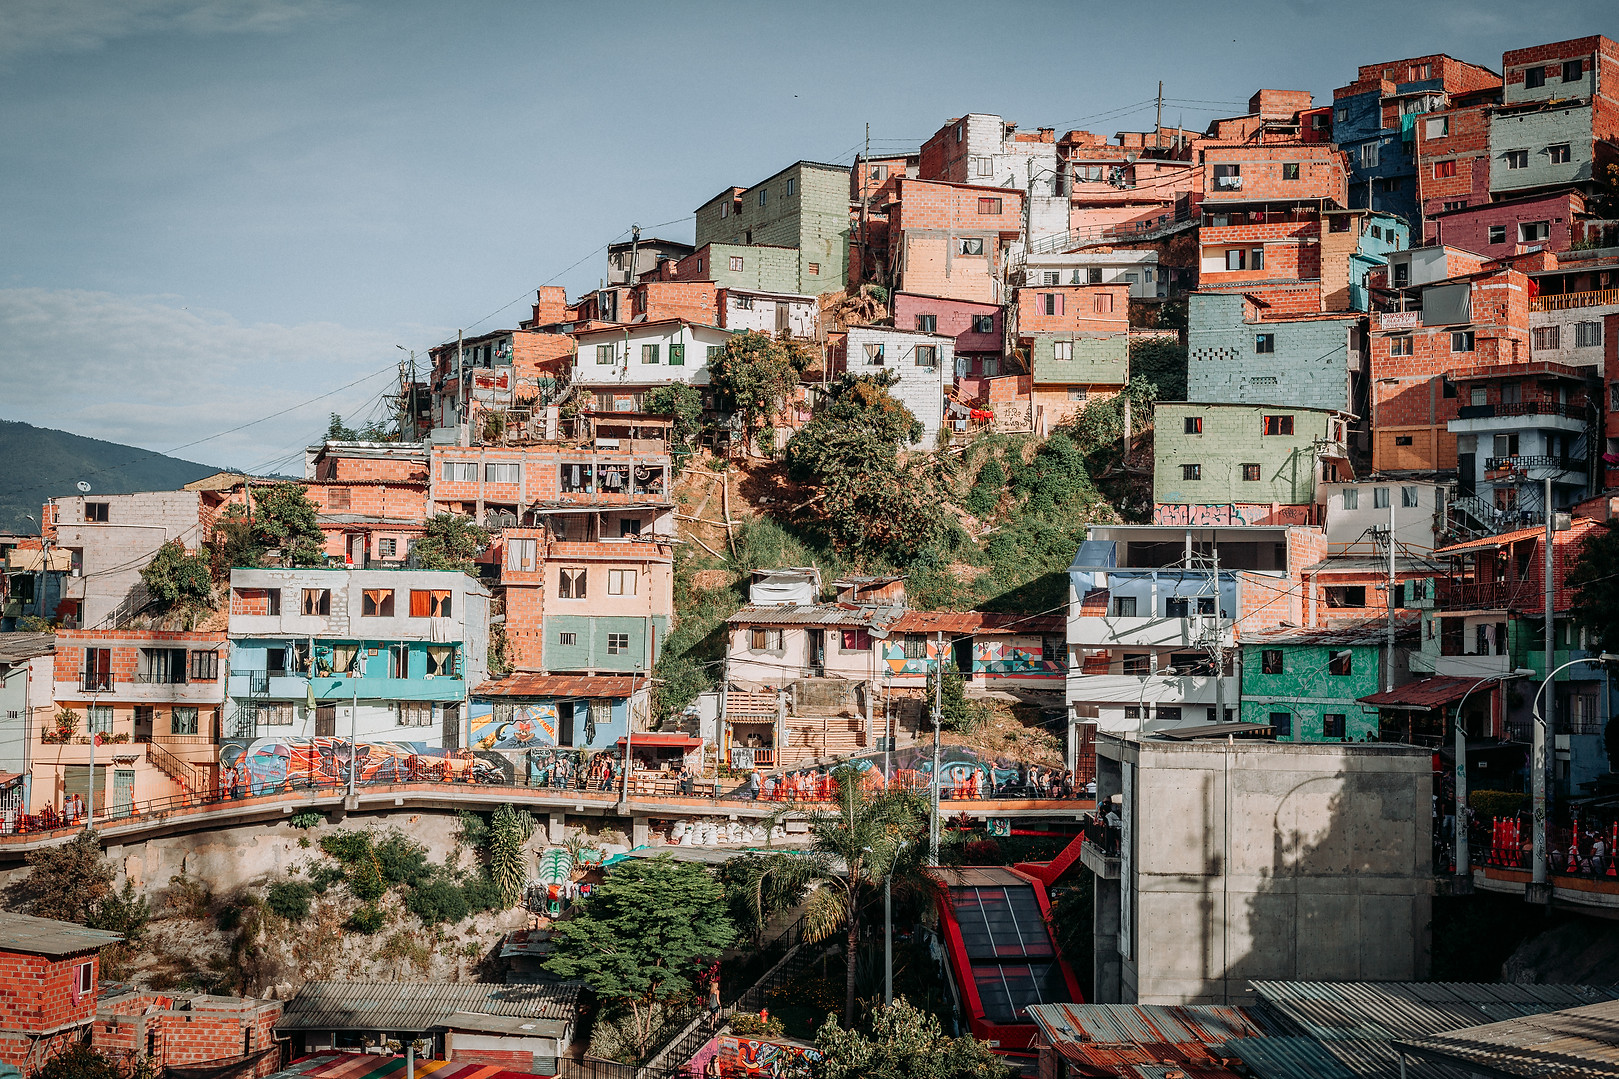 Charlotte Deckers Photography | Travel Photo Medellin | Comuna13 colored houses